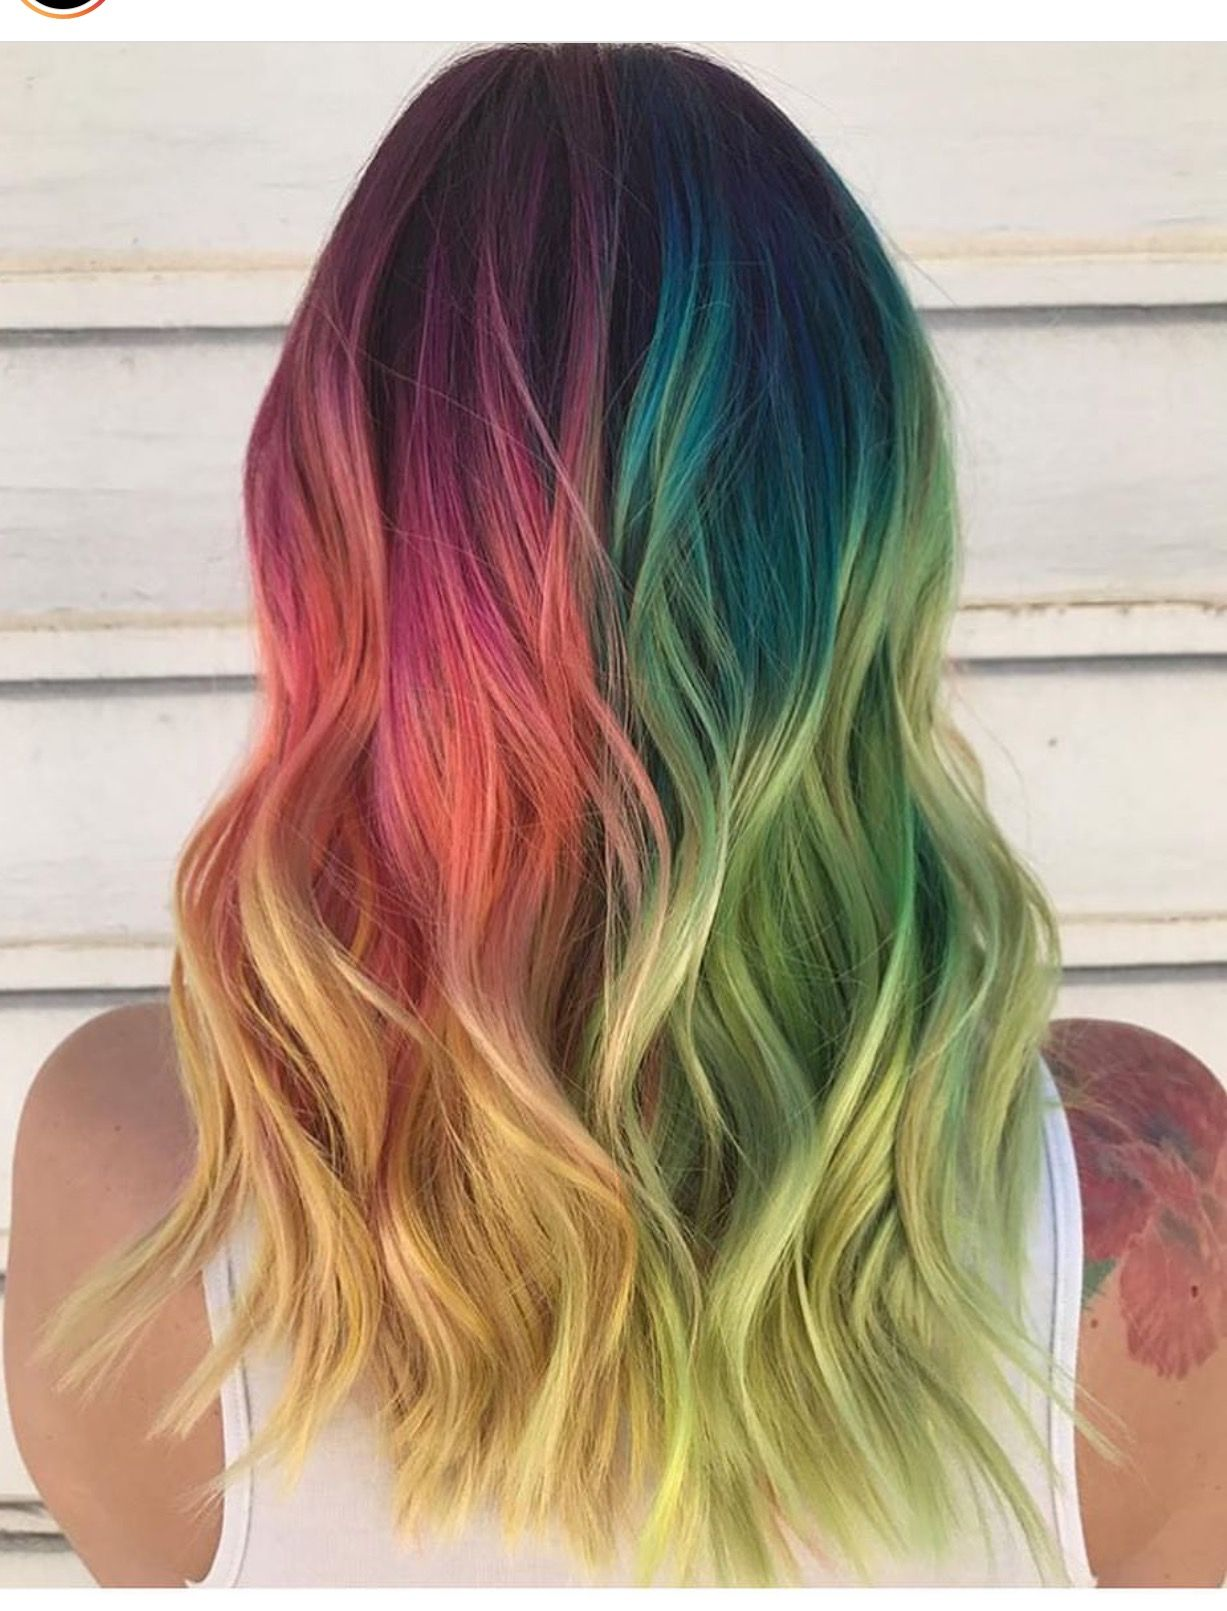 veeerrrry interesting | my style | pinterest | hair coloring